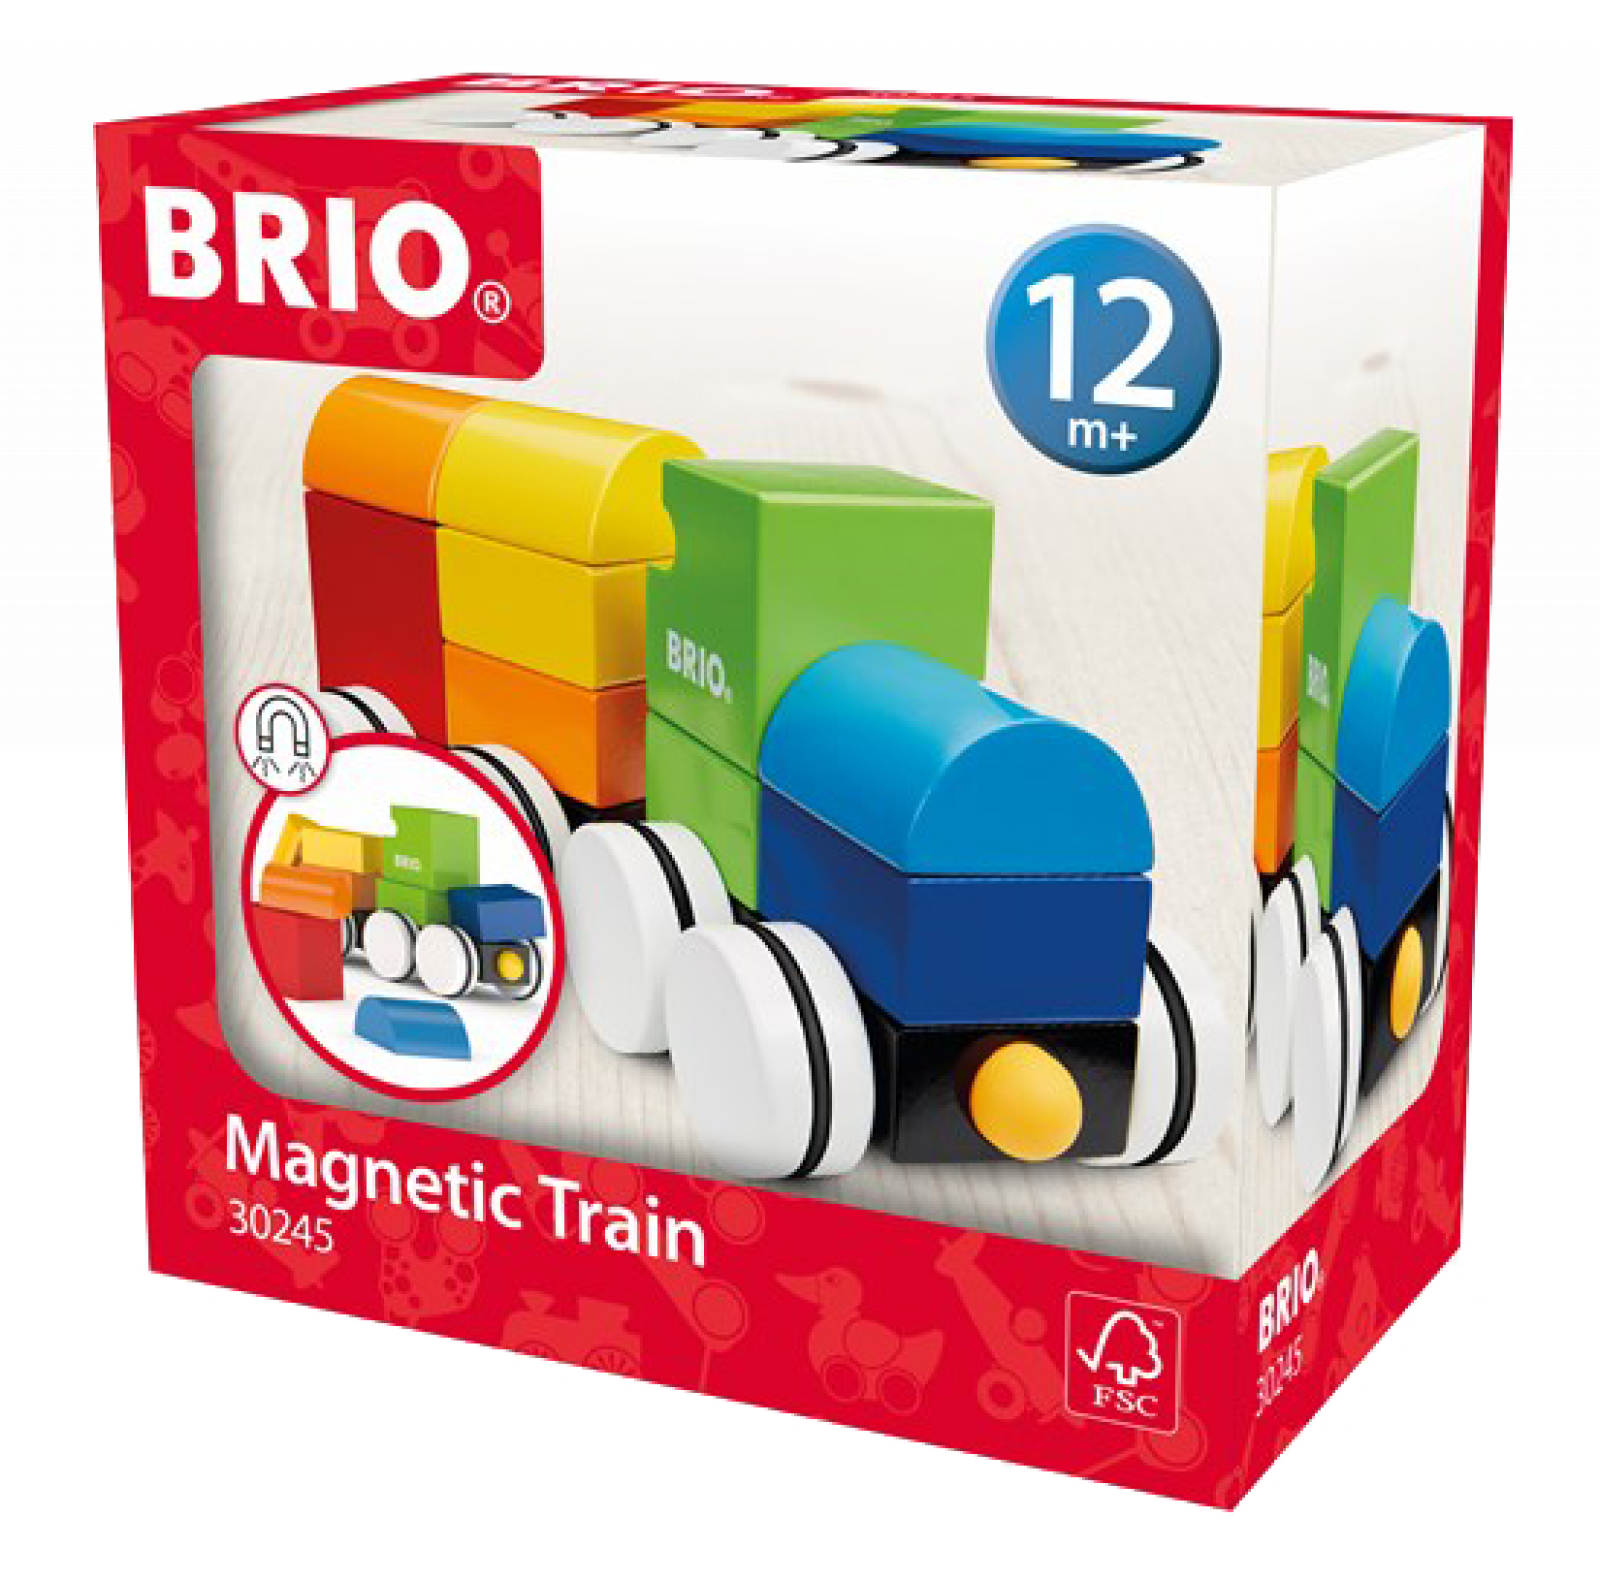 Magnetic Train Toy By BRIO 1+ thumbnails